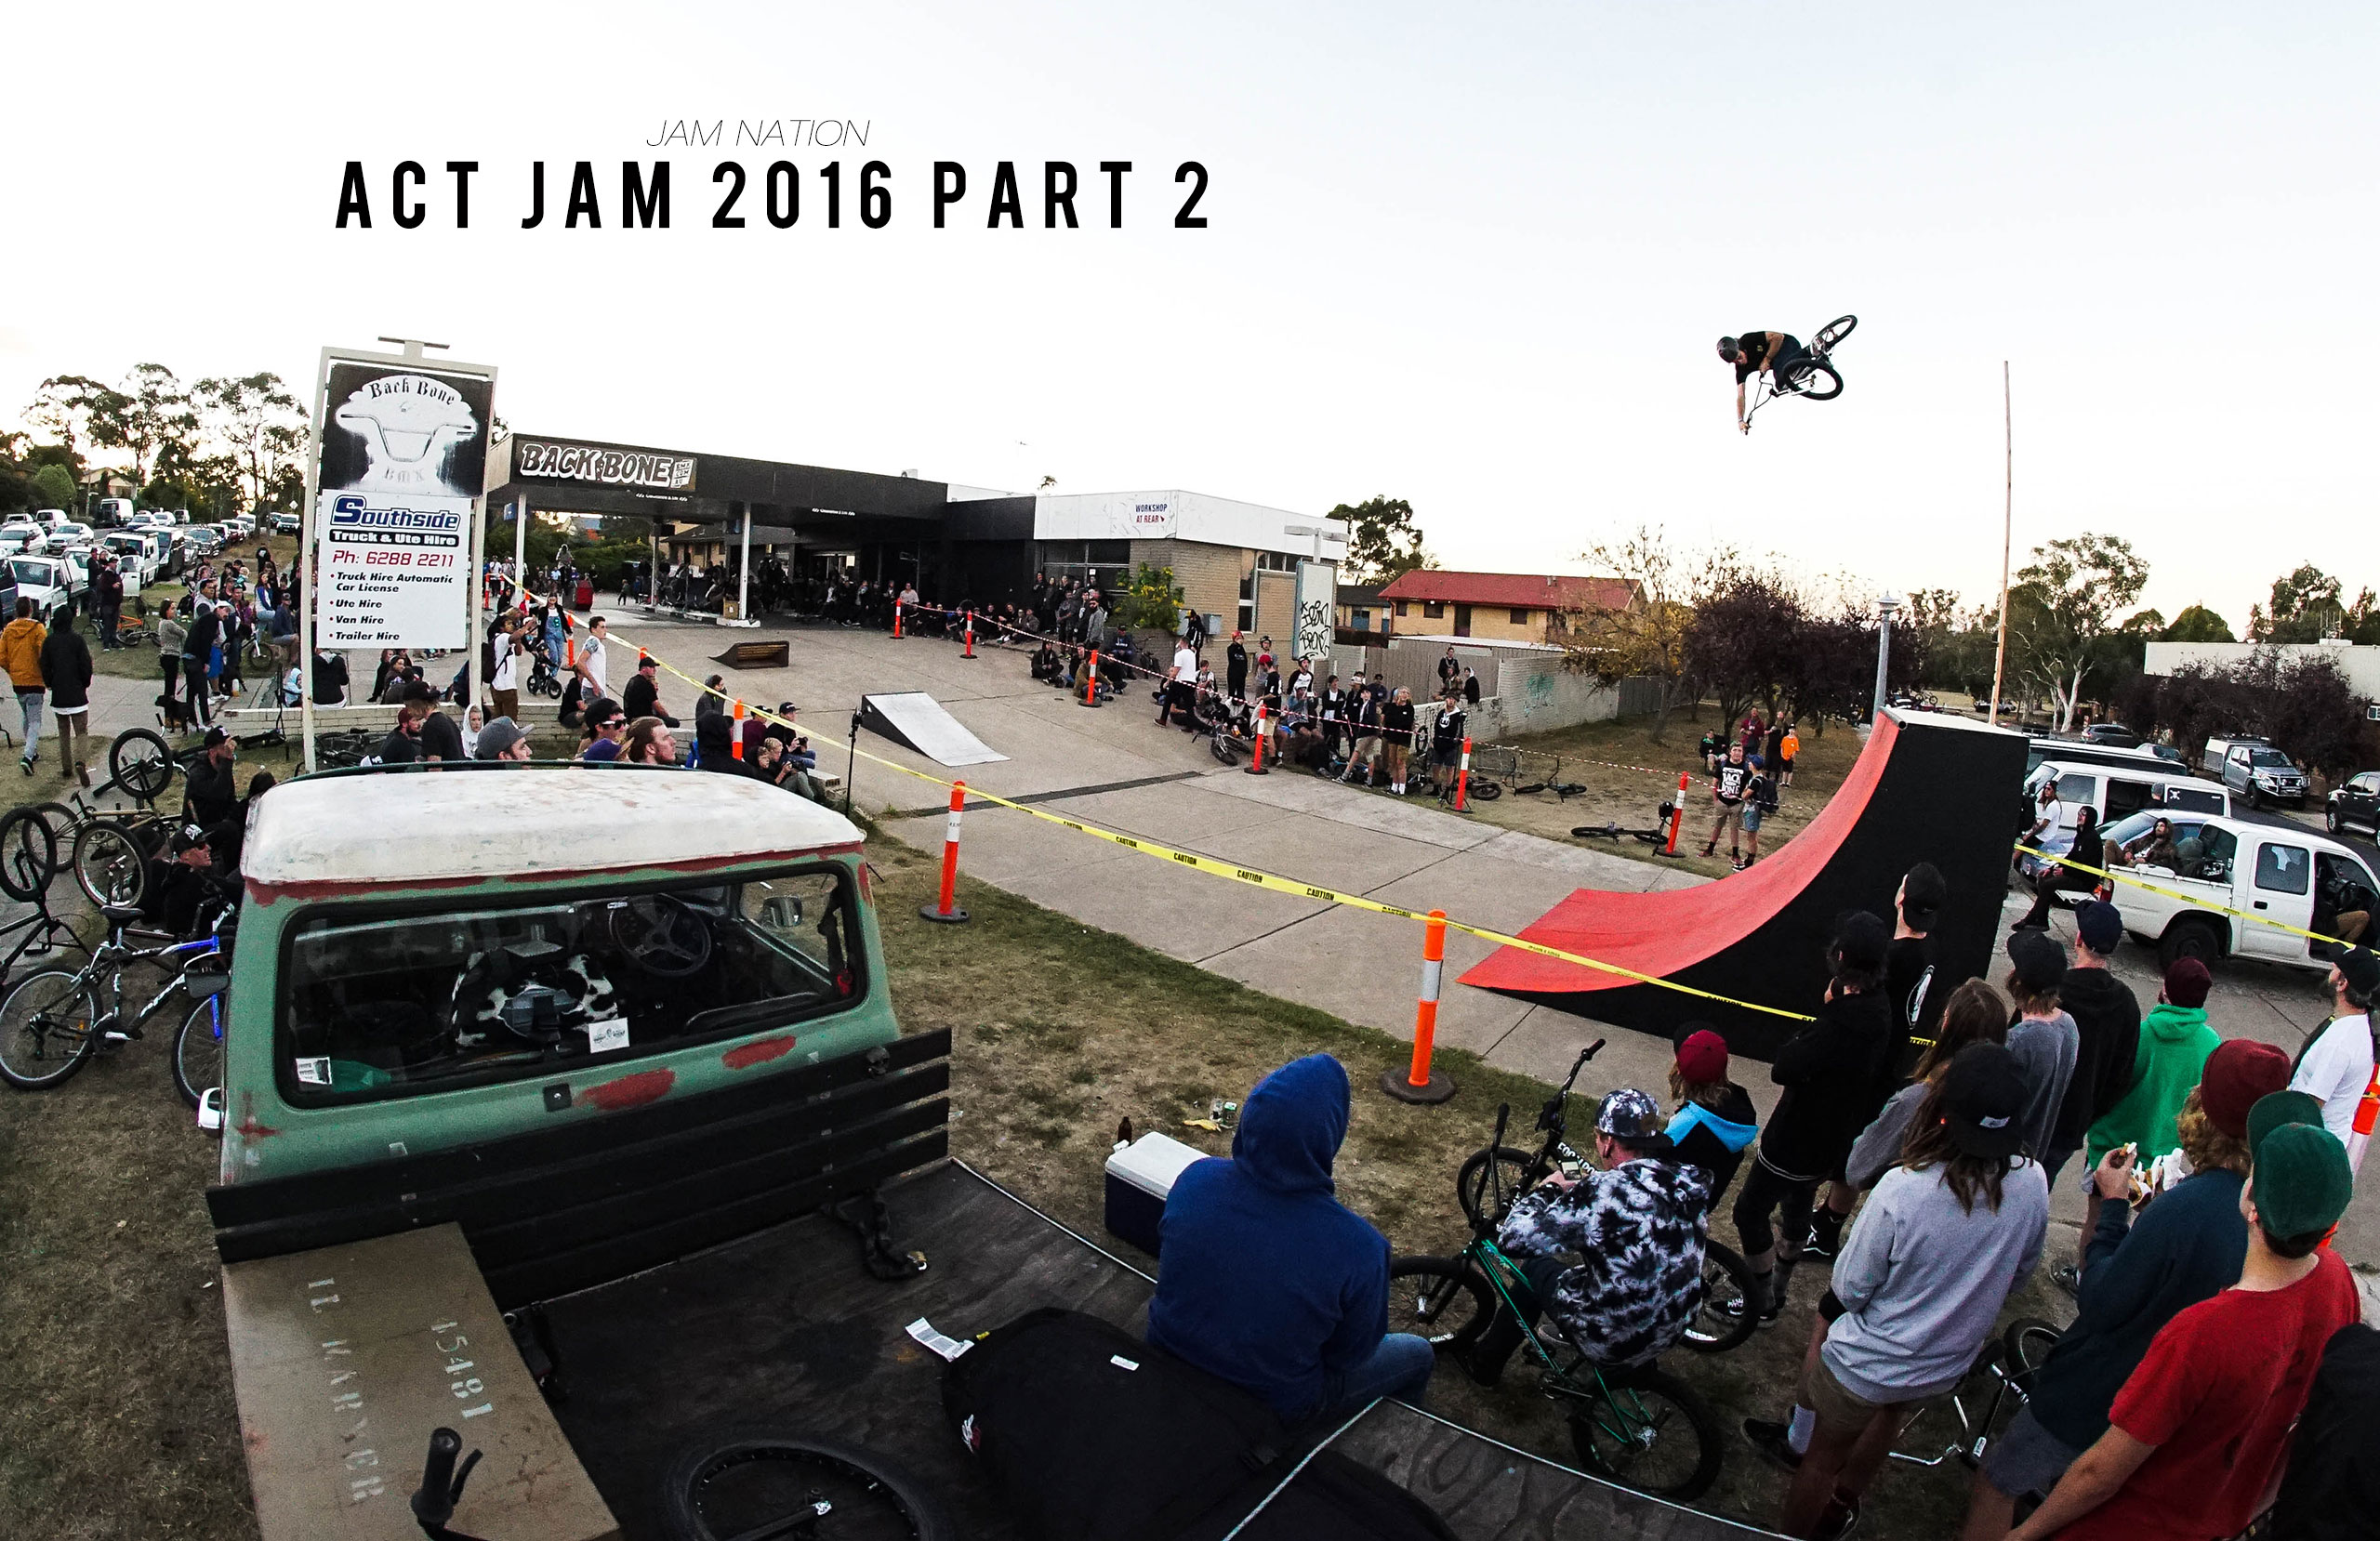 JAM NATION / ACTJAM 2016 / PART 2